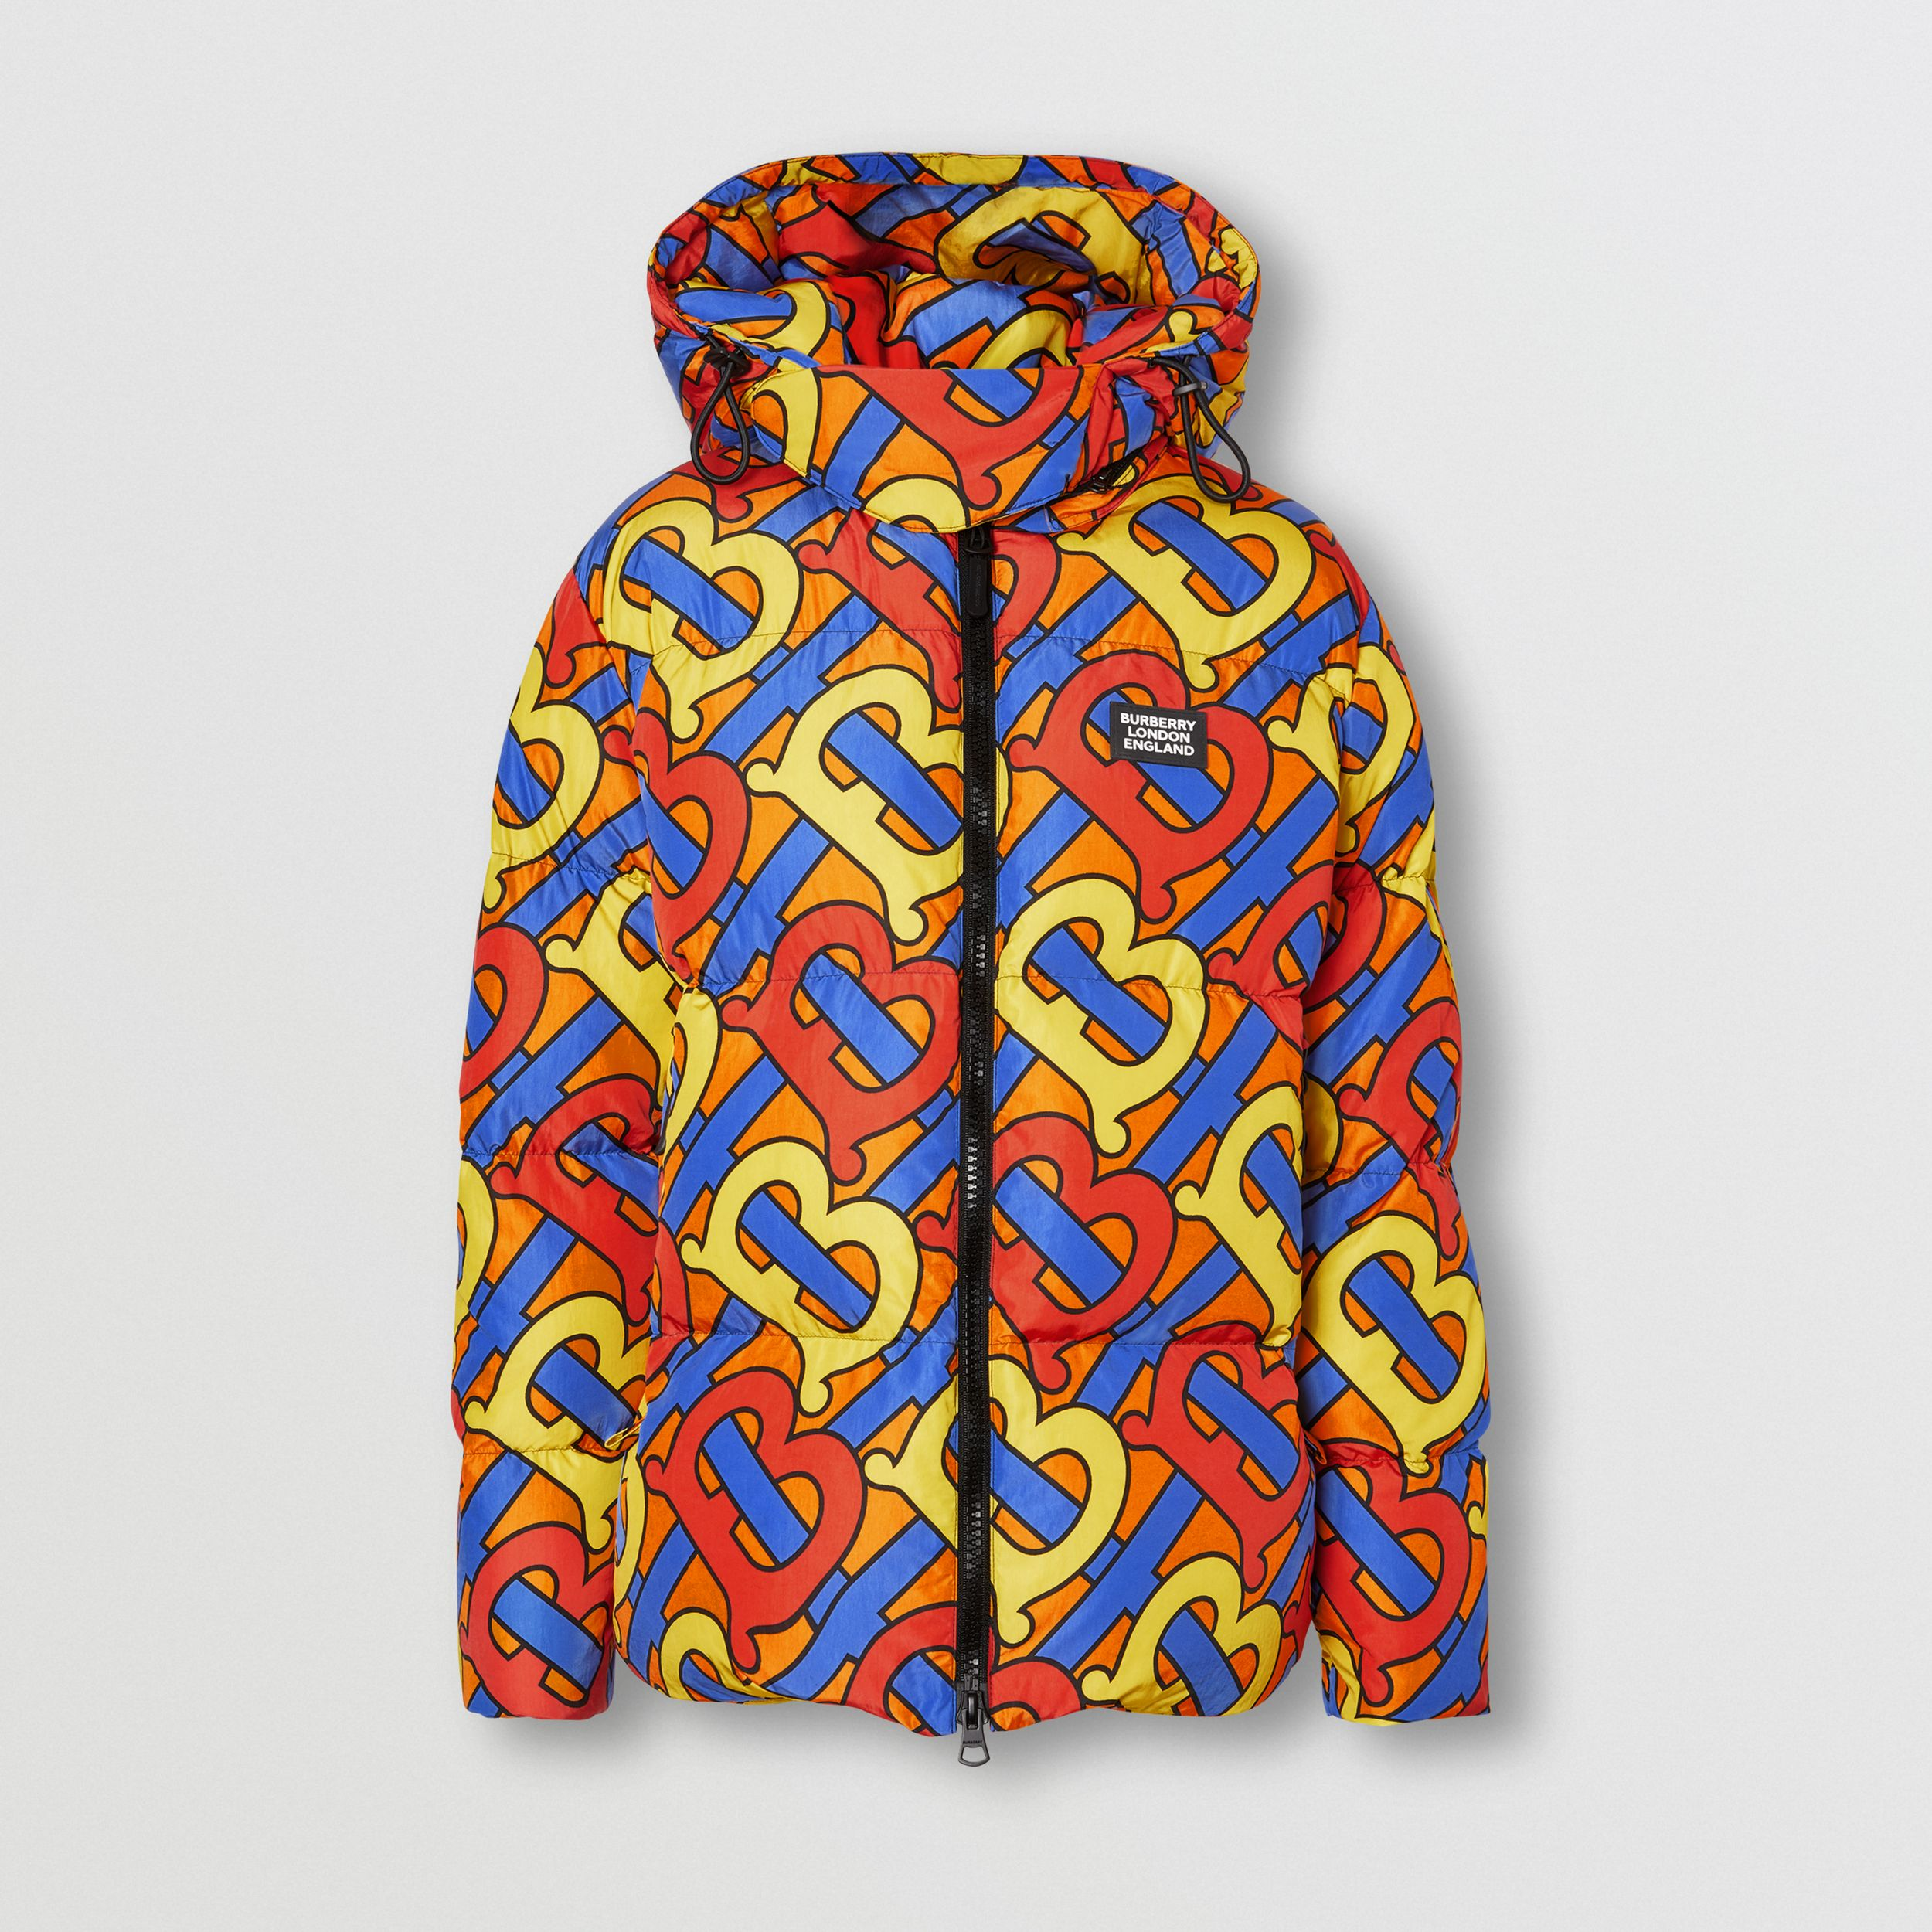 Monogram Print Puffer Jacket in Multicolour | Burberry - 1